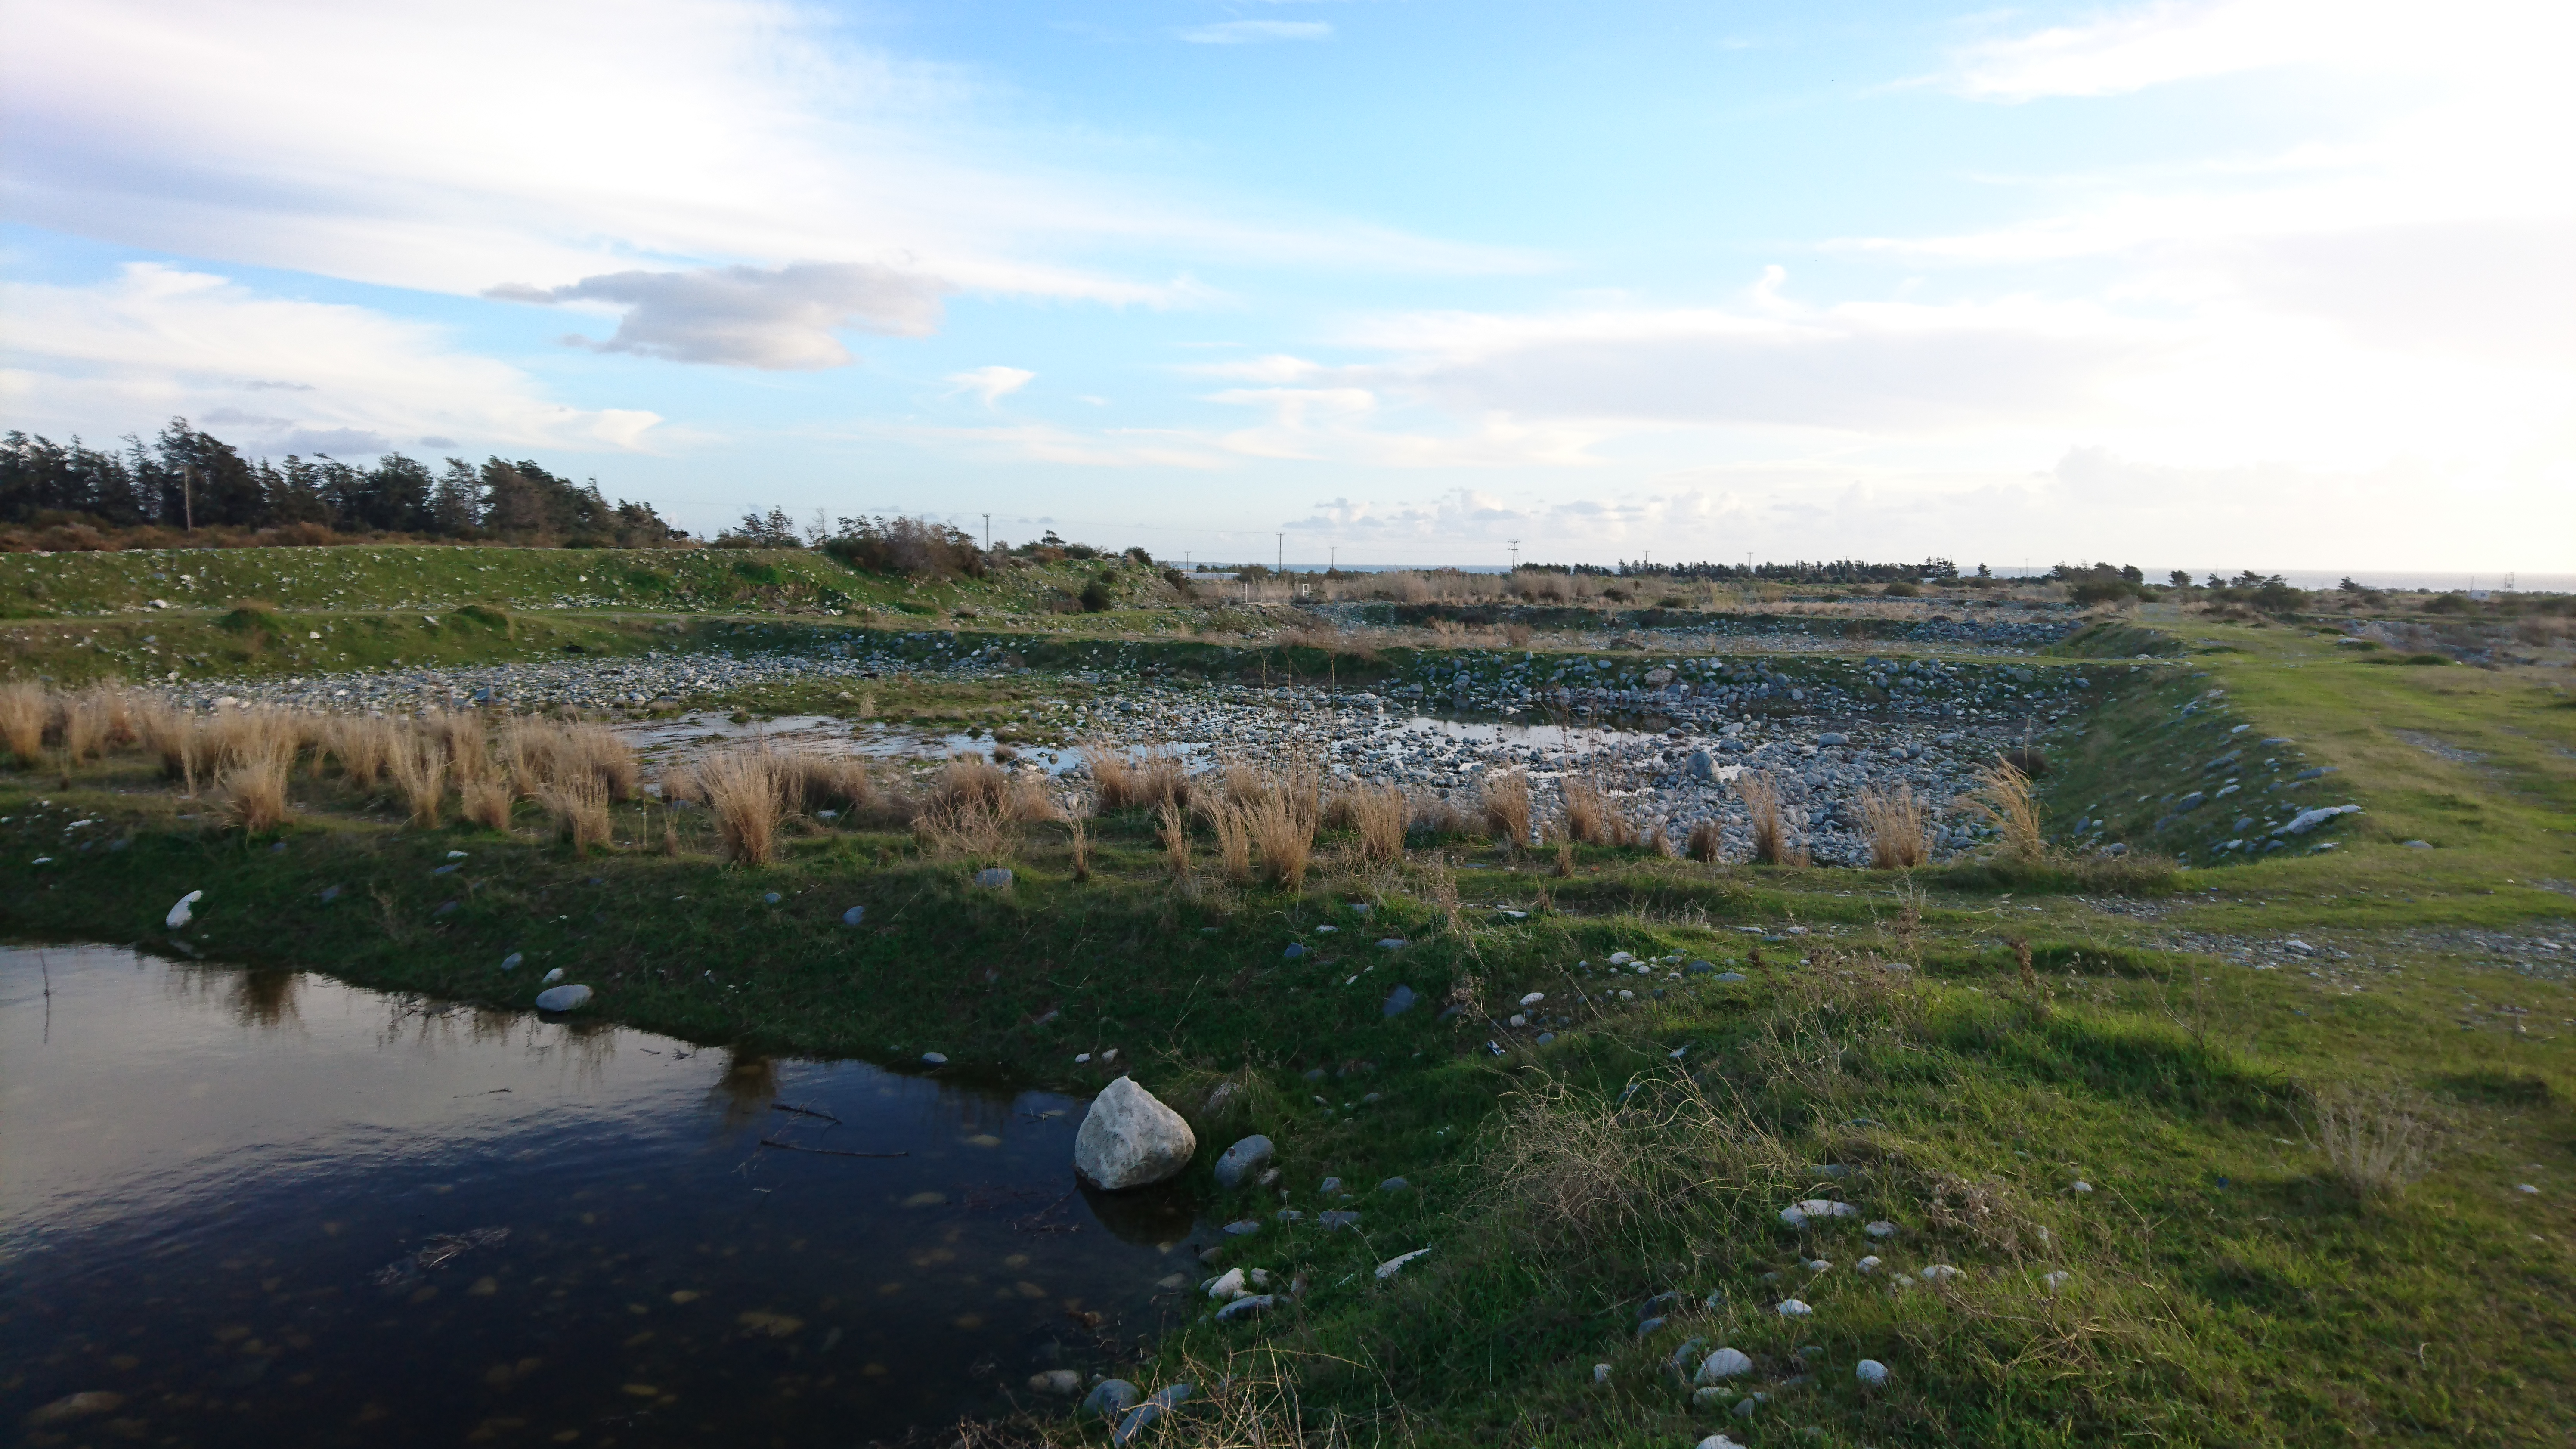 ww infiltration ponds in Cyprus